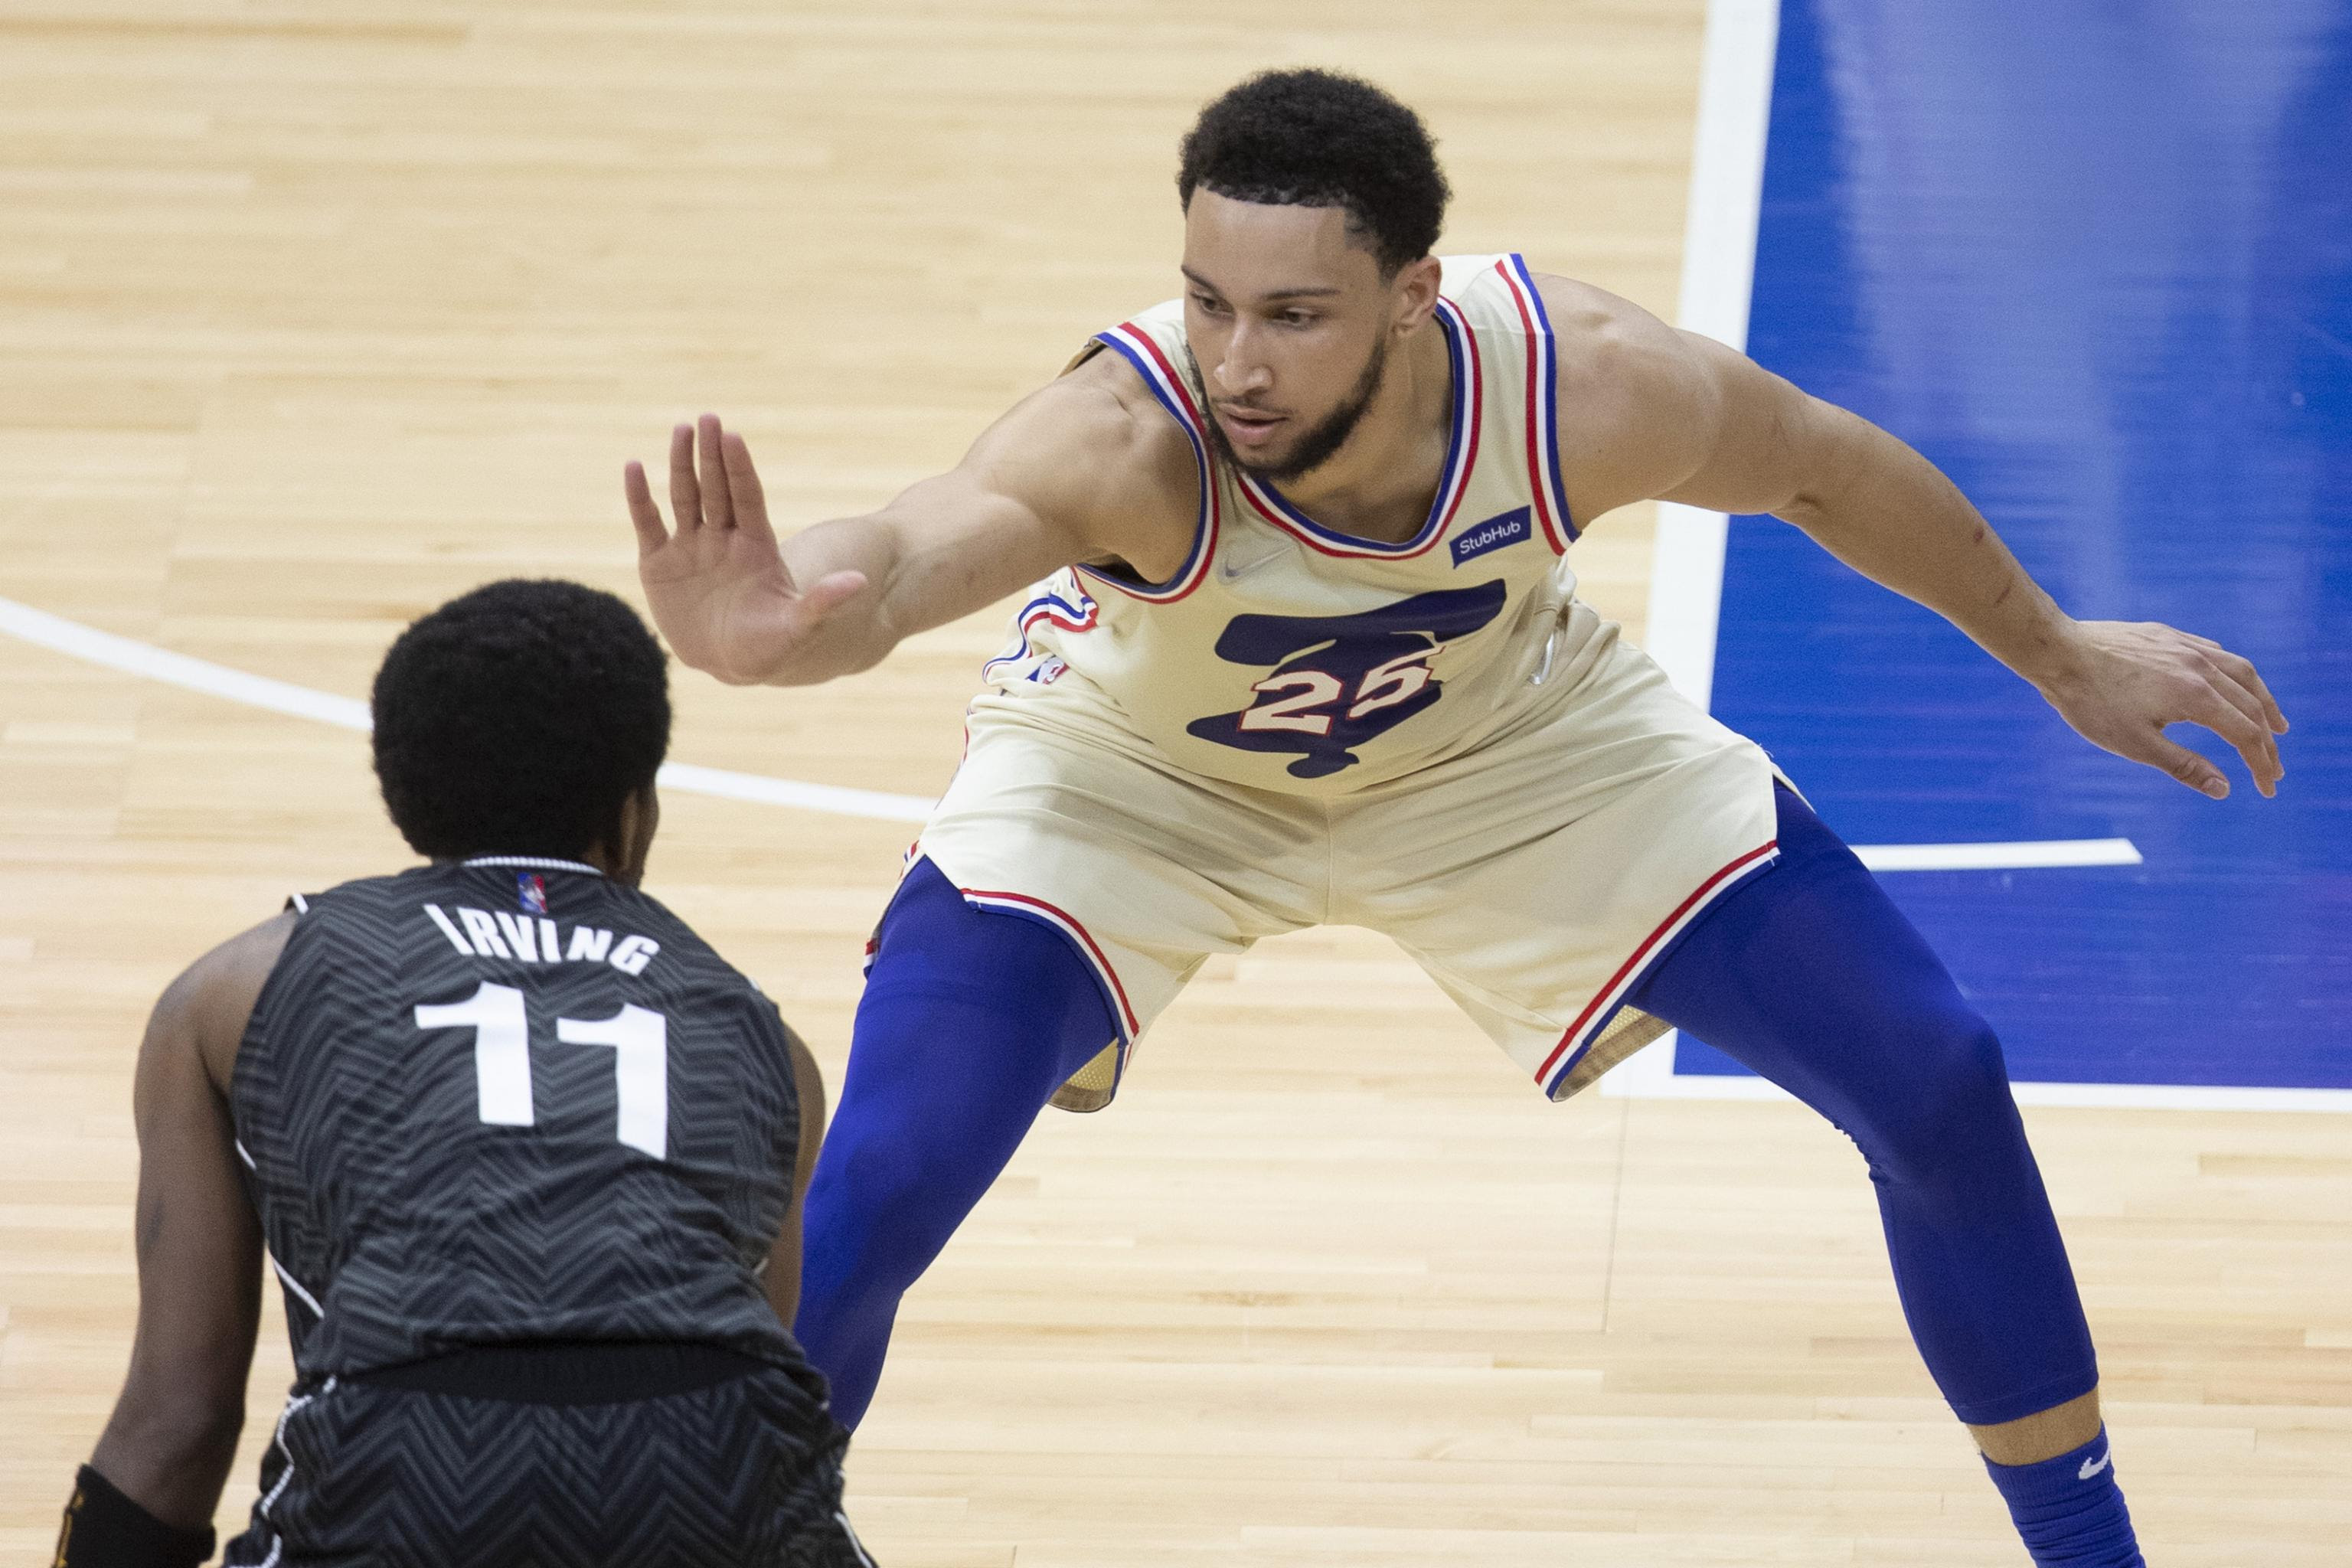 Sources: Kyrie Irving, Ben Simmons Sagas Could Lead to NBA Rule Changes